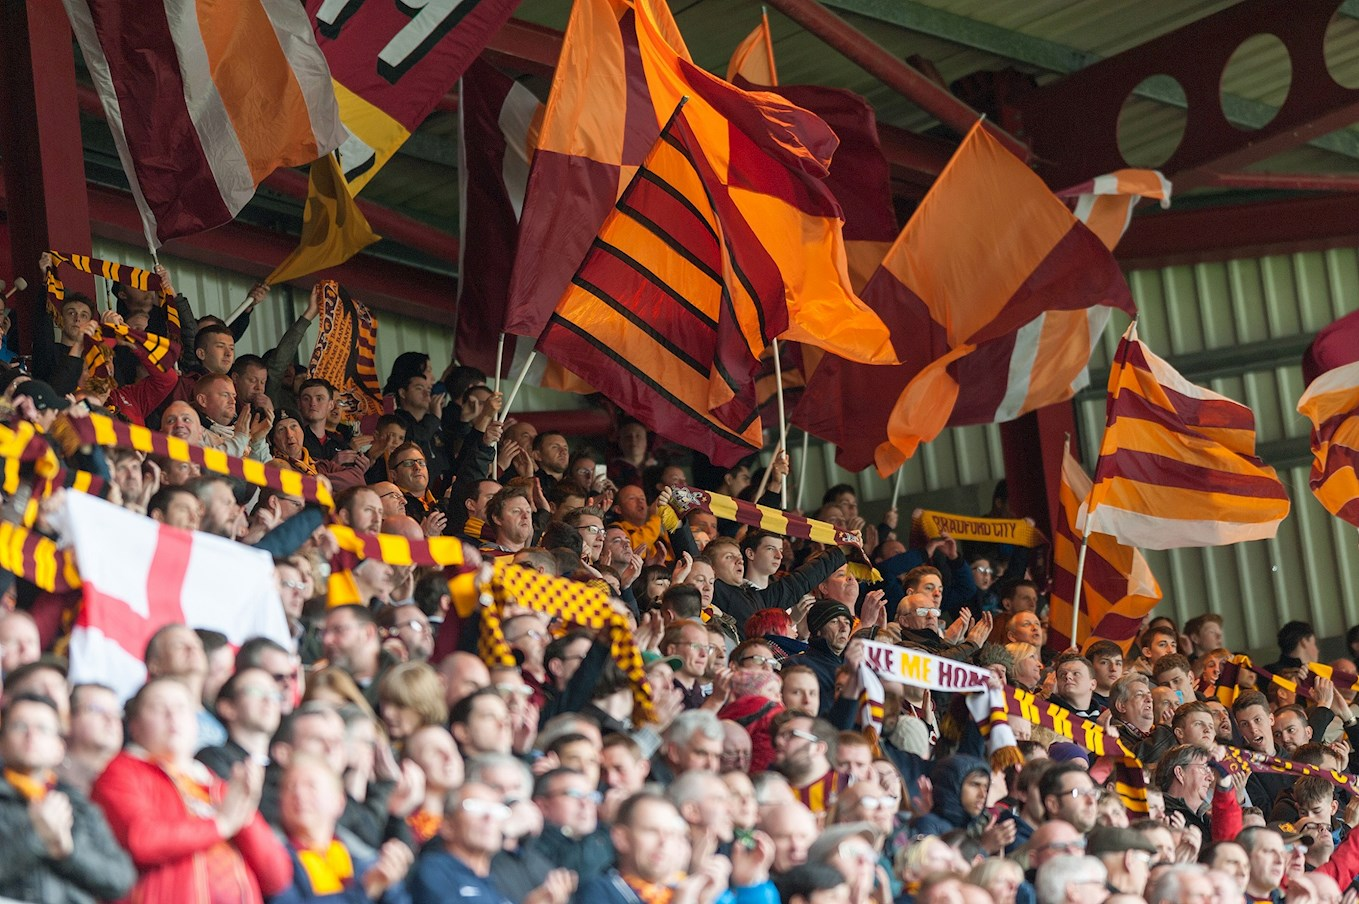 K BLOCK BANTAMS TO BE GIVEN NEW HOME FOR PLYMOUTH TIE ...